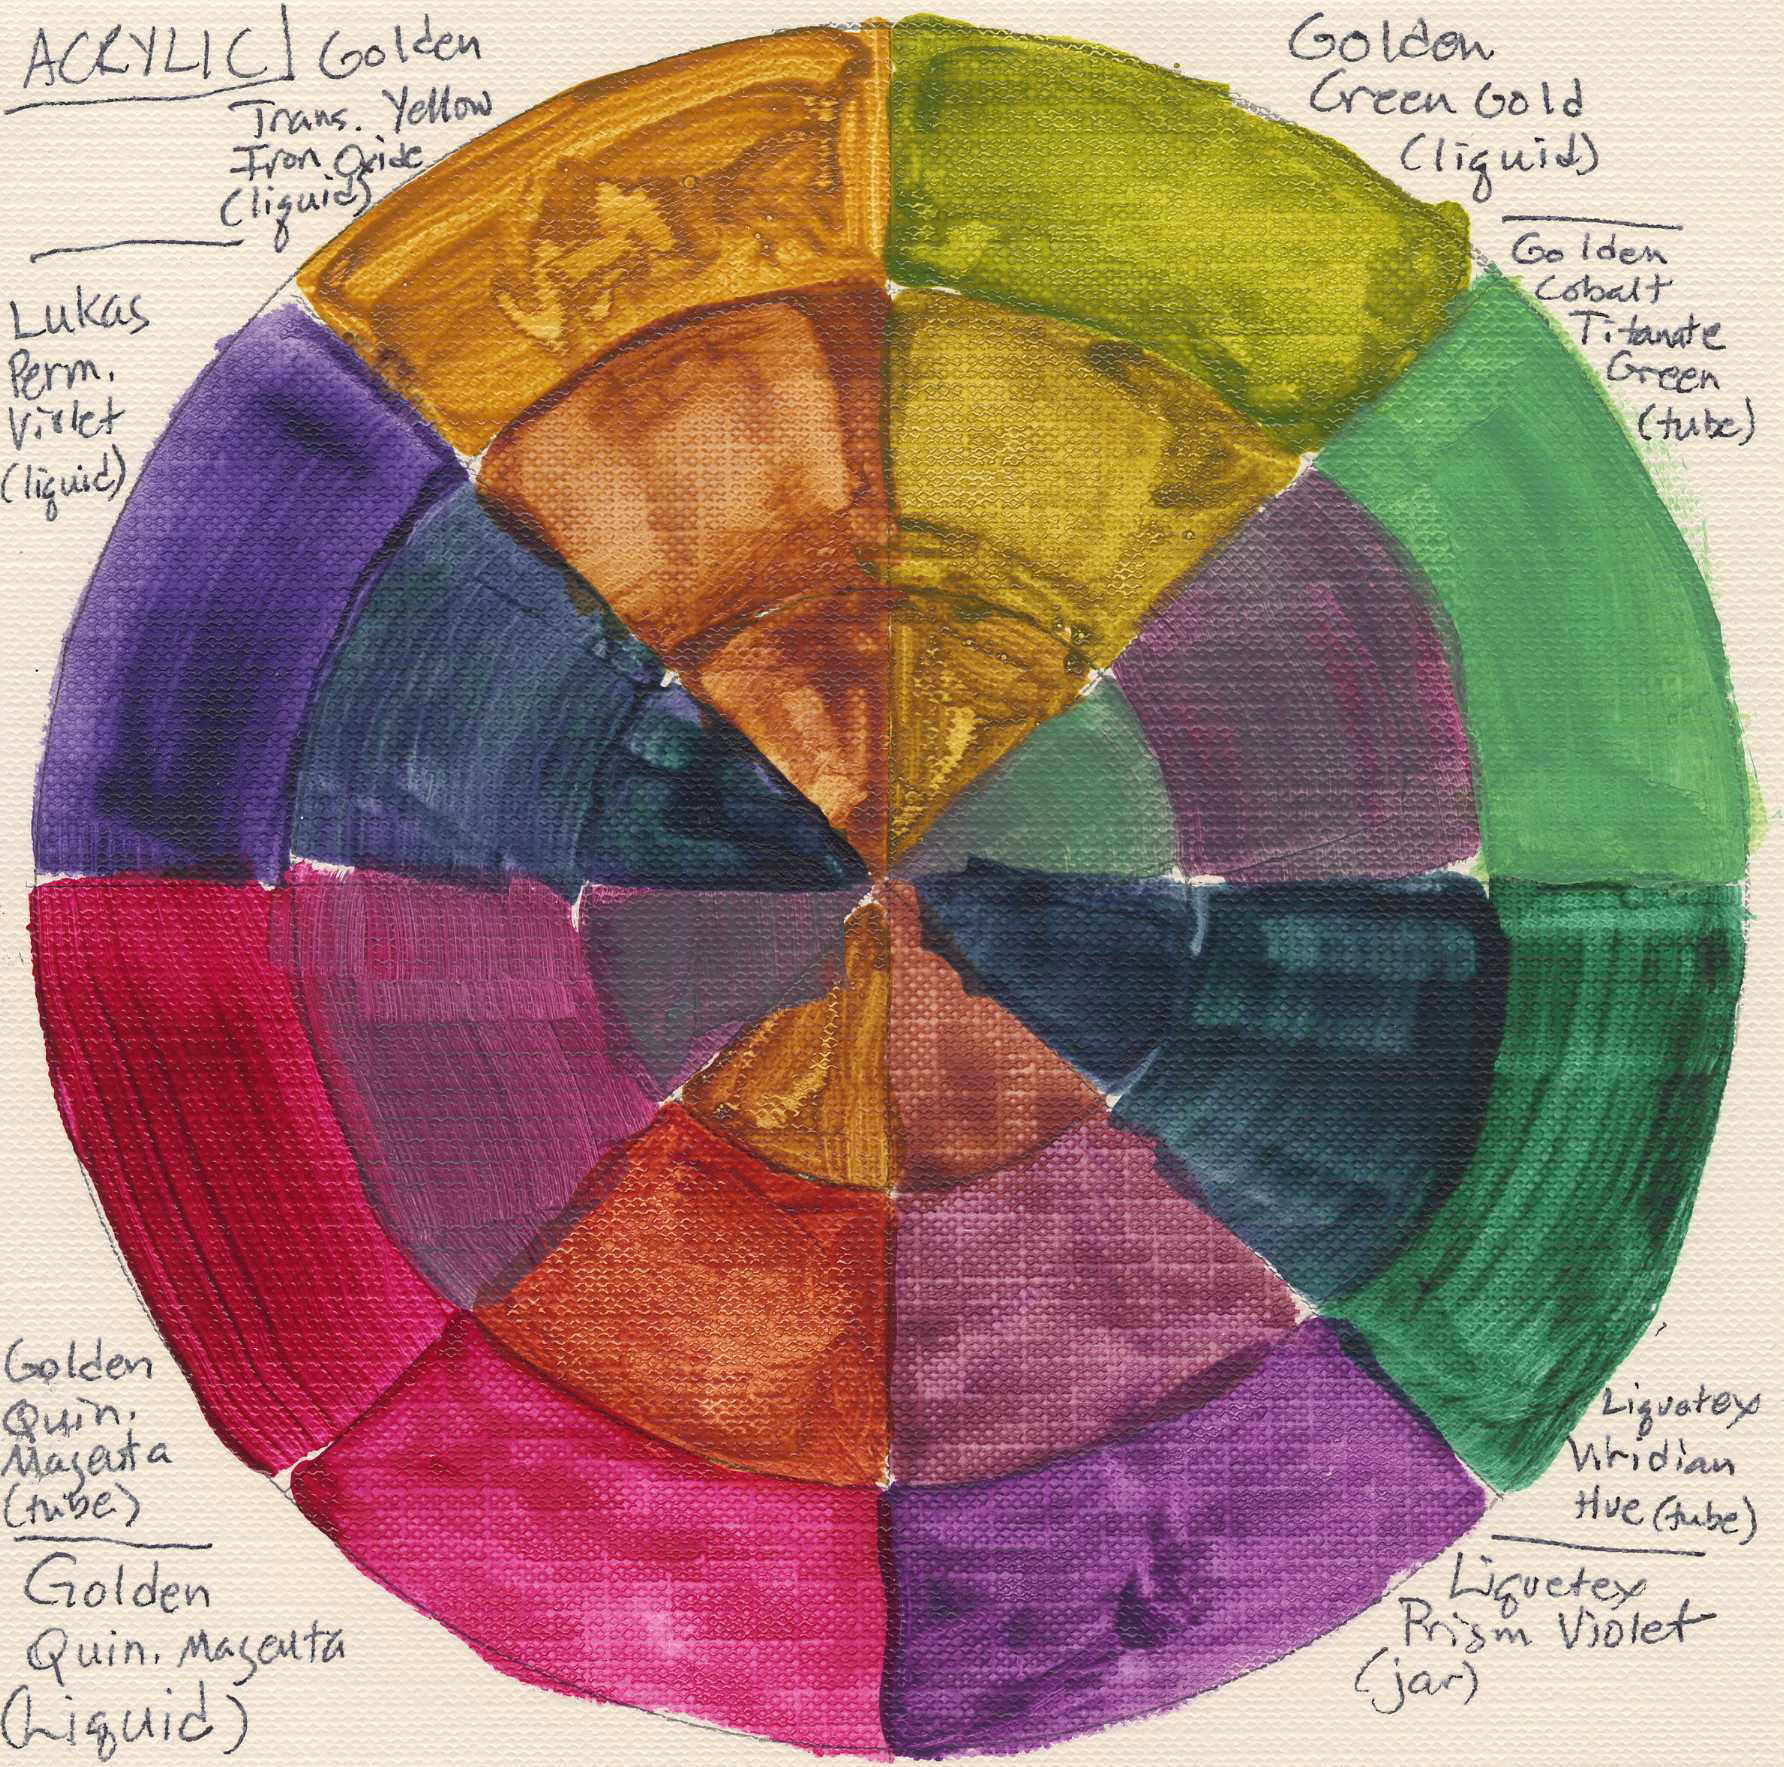 Color-mixing-chart-Acrylic-8-color-035